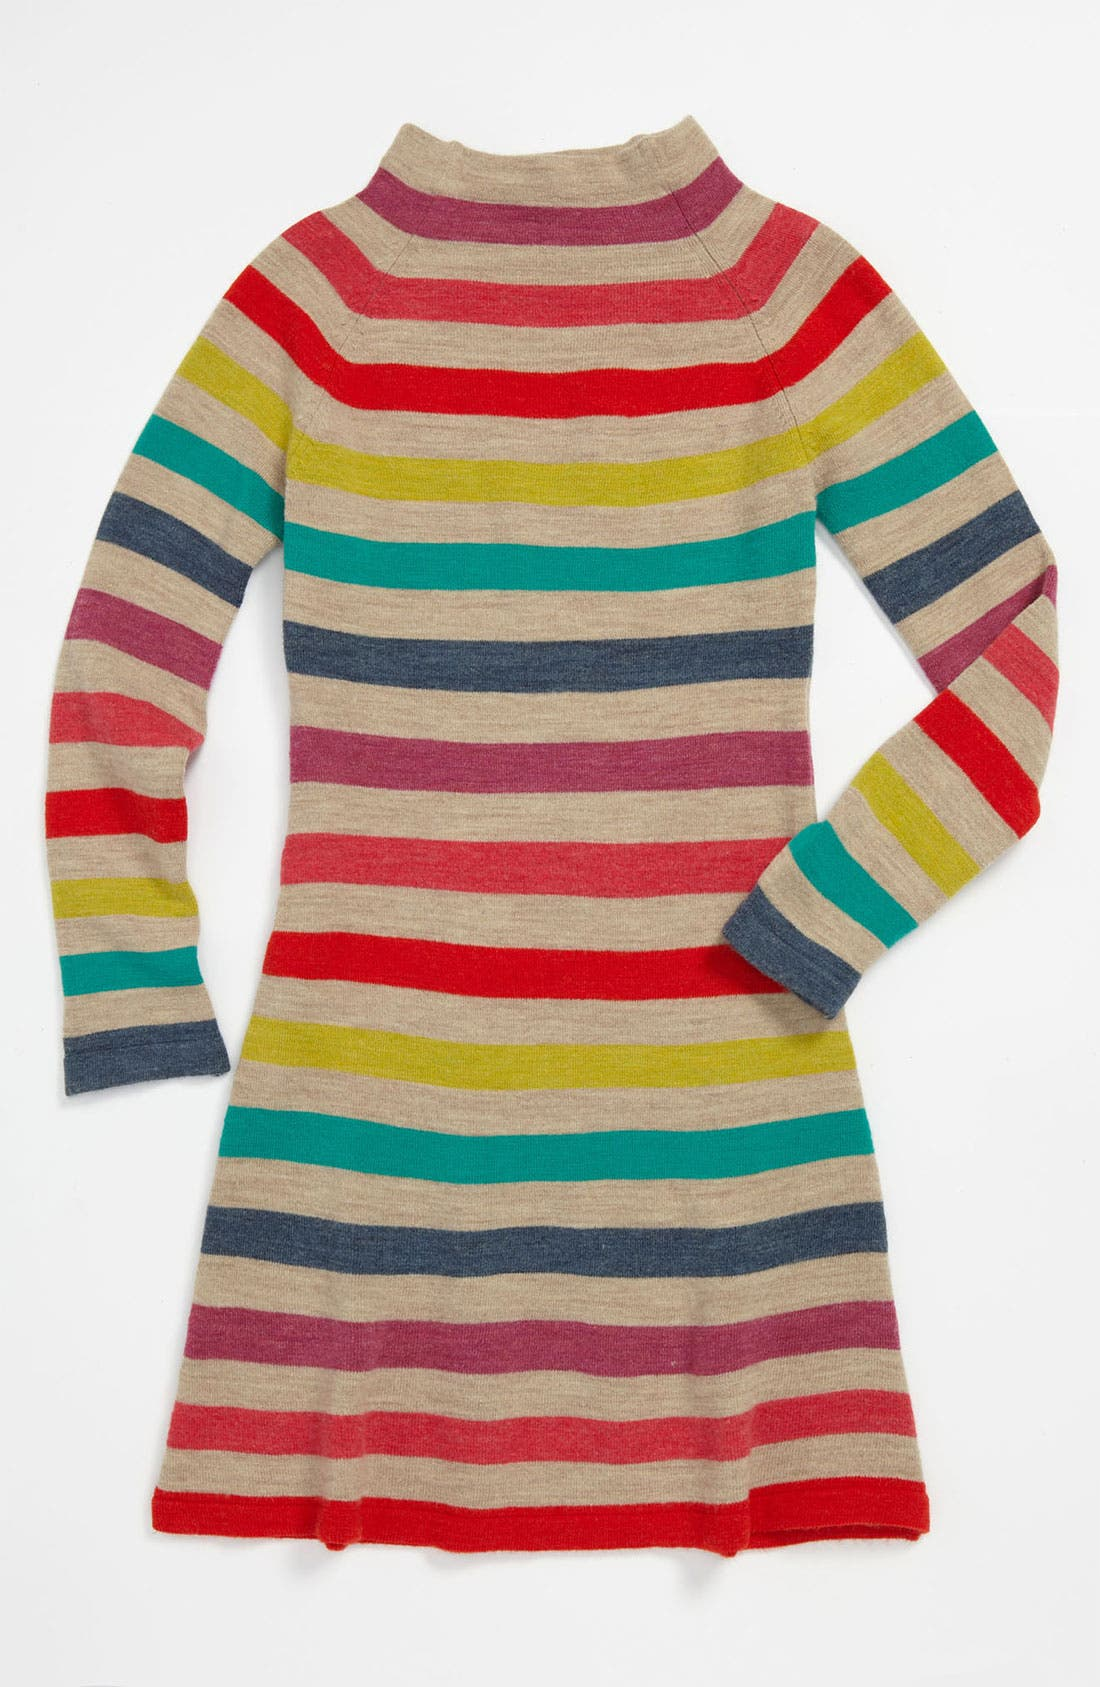 Main Image - United Colors of Benetton Kids Stripe Sweater Dress (Little Girls & Big Girls)